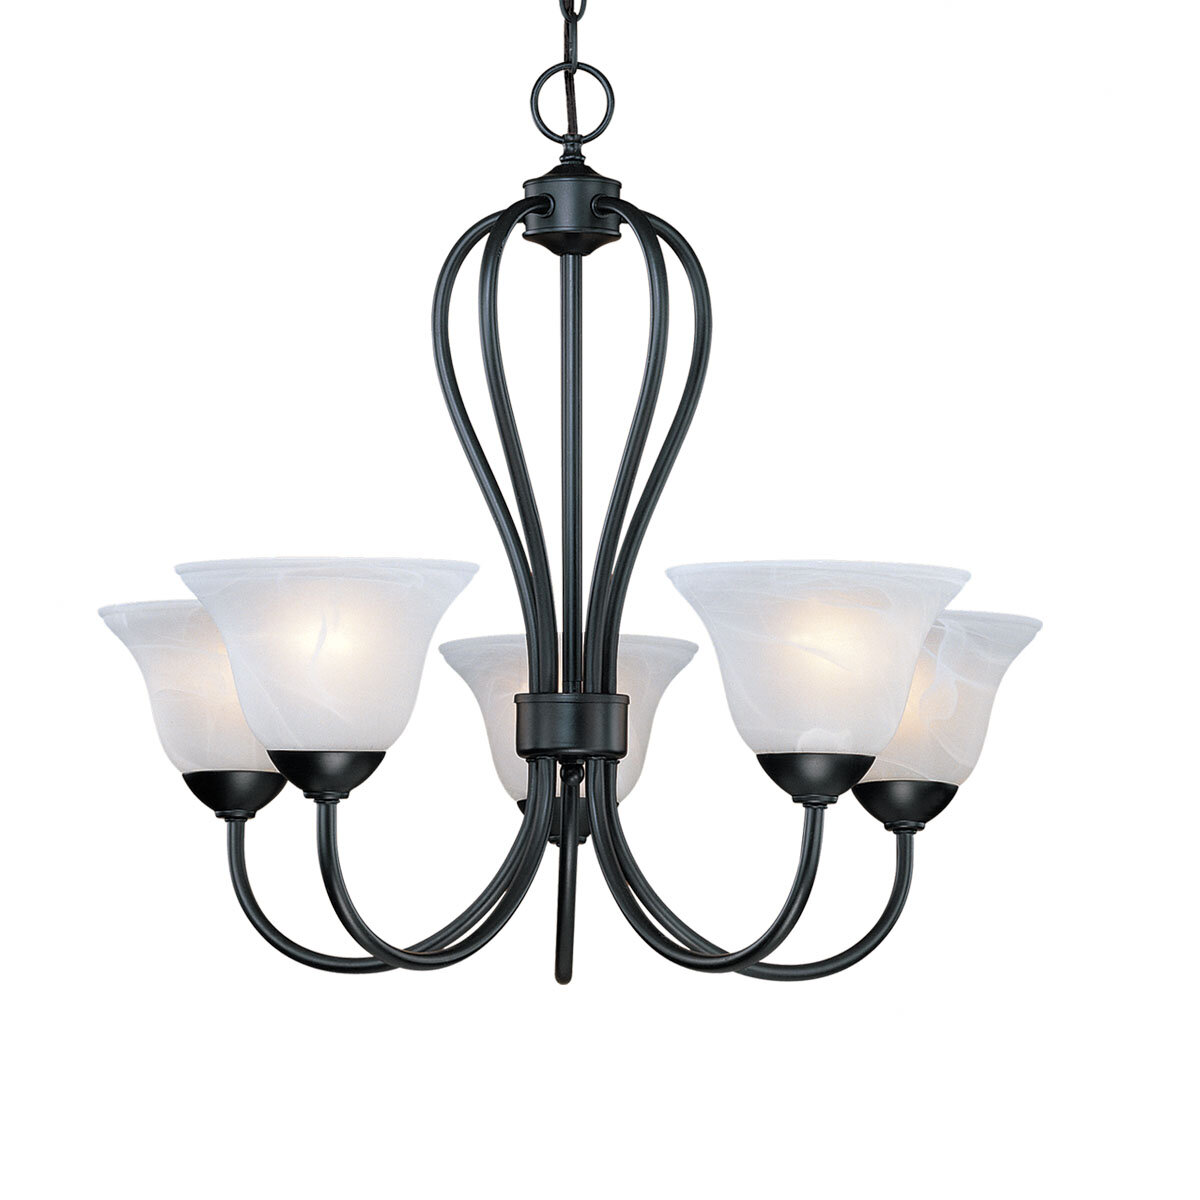 Red Barrel Studio Baldridge 5 Light Shaded Classic Traditional Chandelier Reviews Wayfair